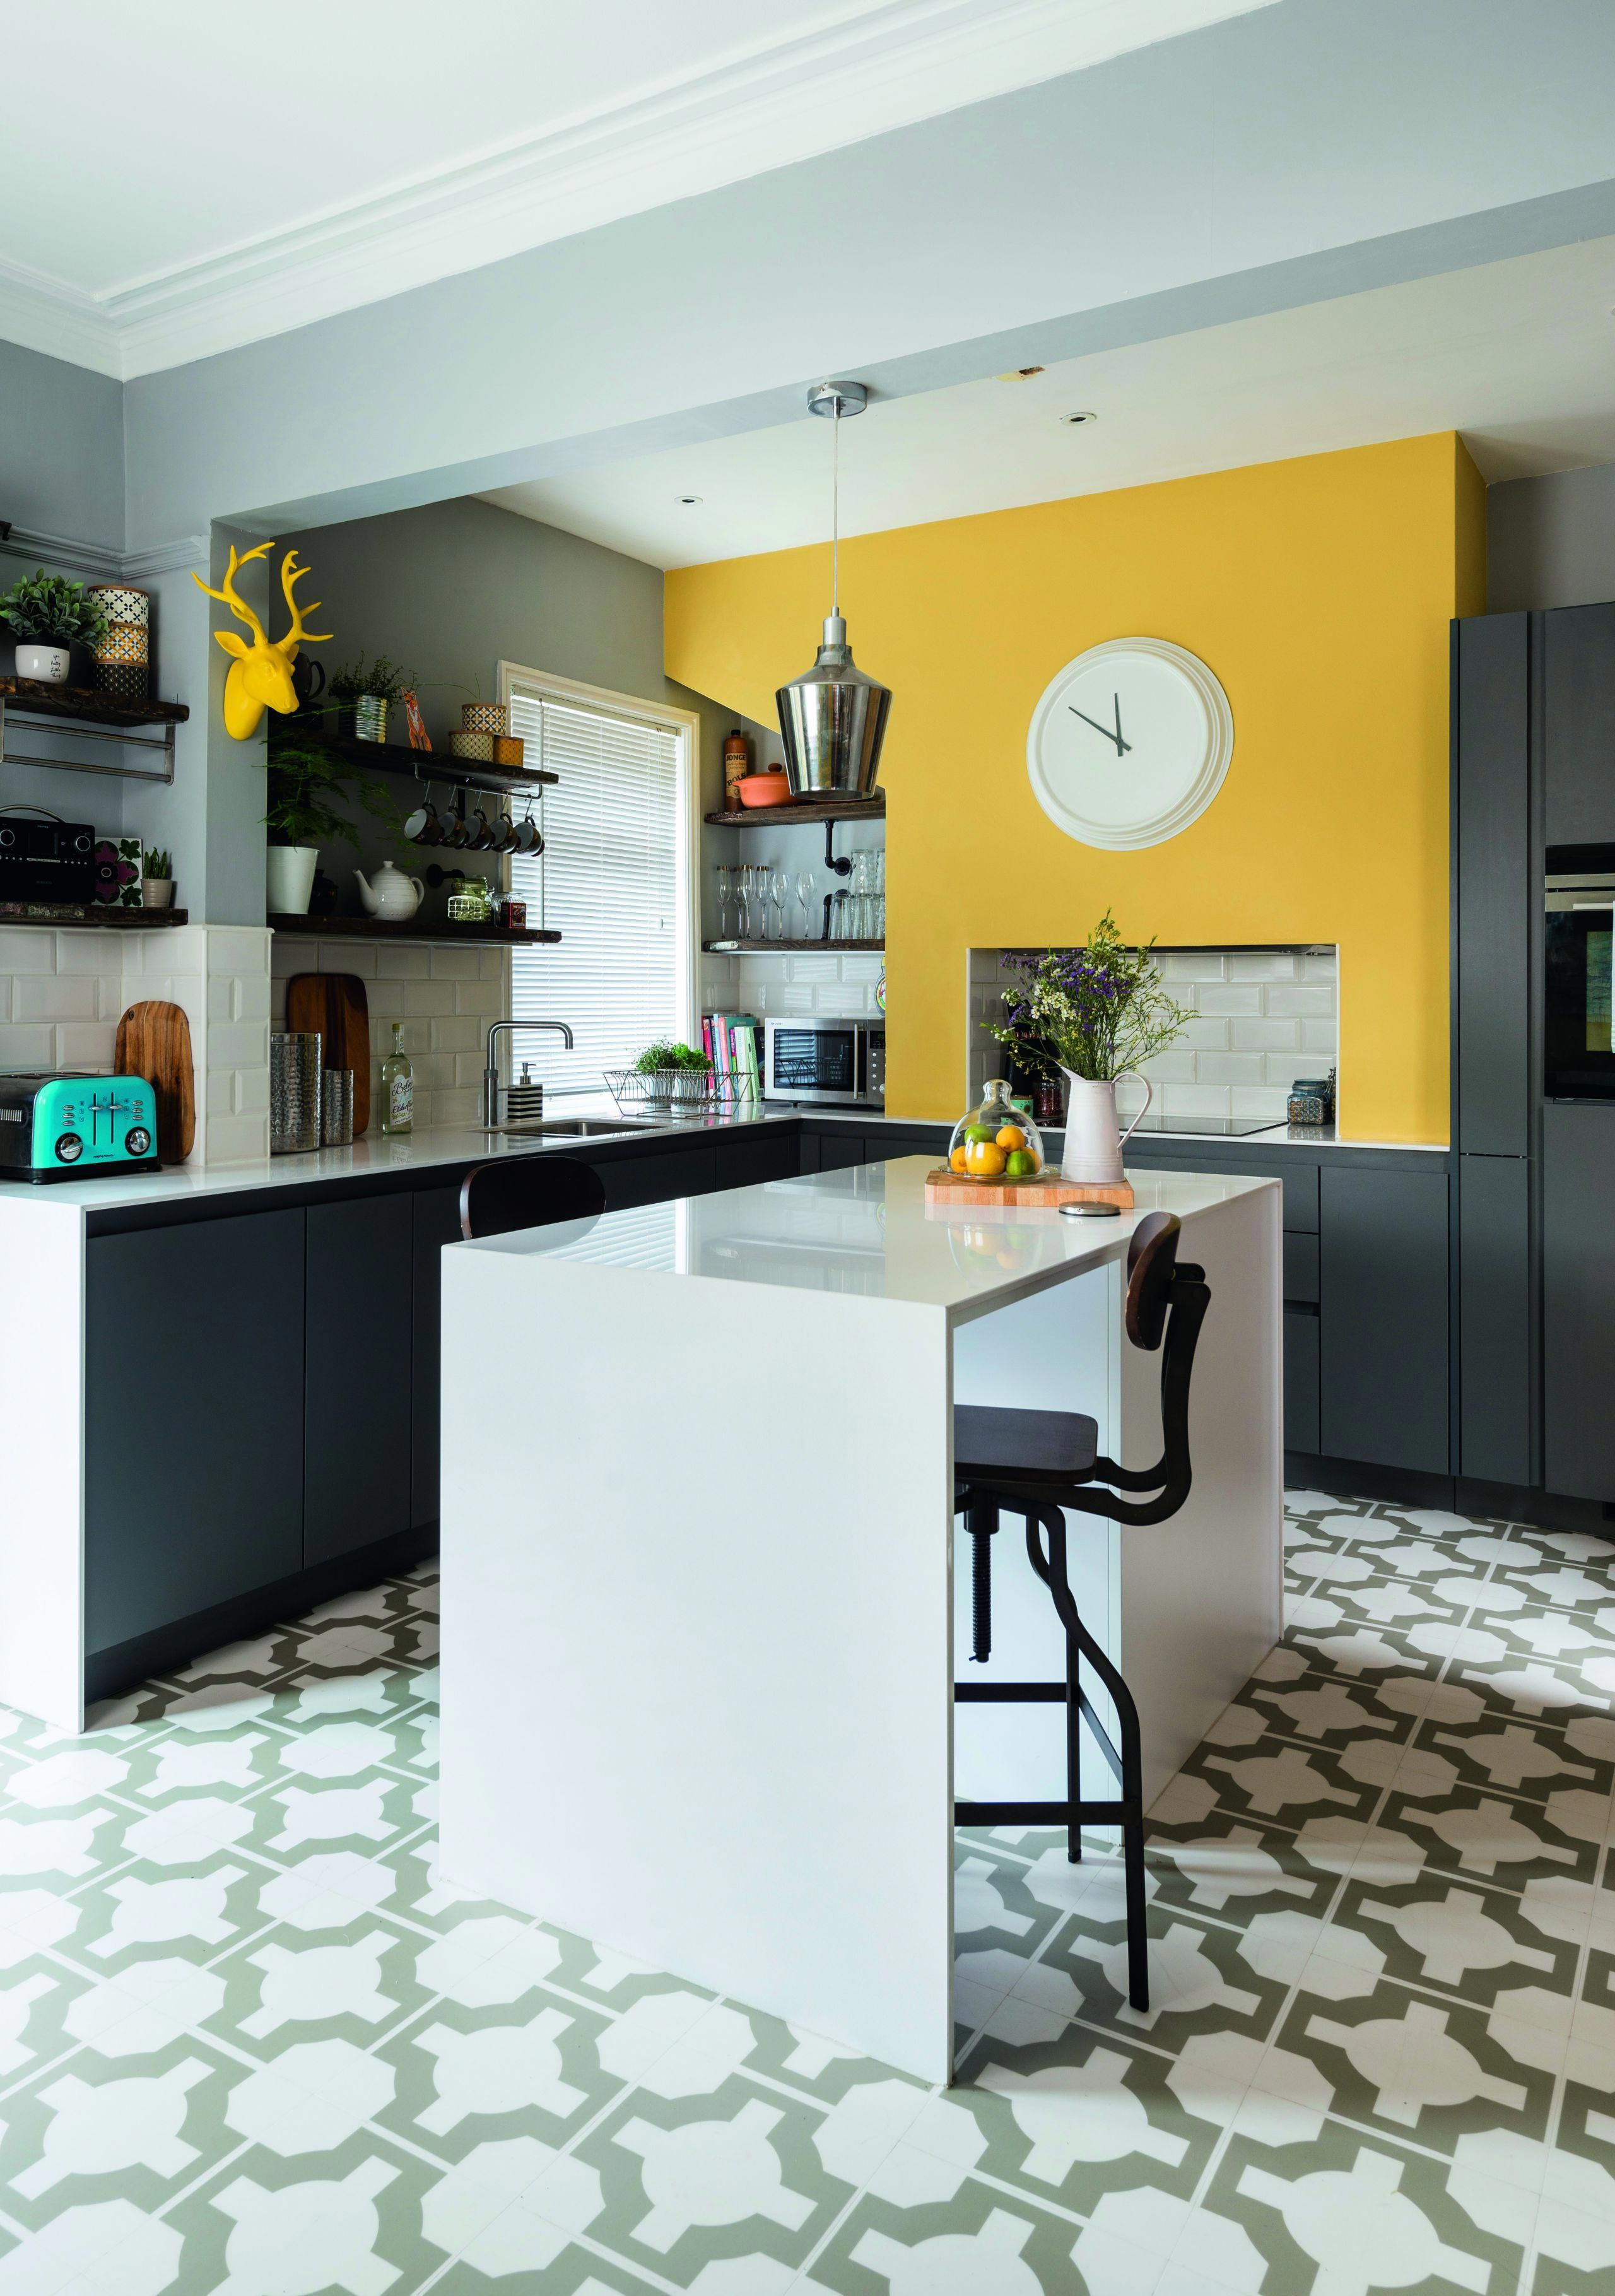 gray and white are seasonal favorite kitchen cabinet colors easily versatile to a standard con on kitchen interior yellow and white id=96472